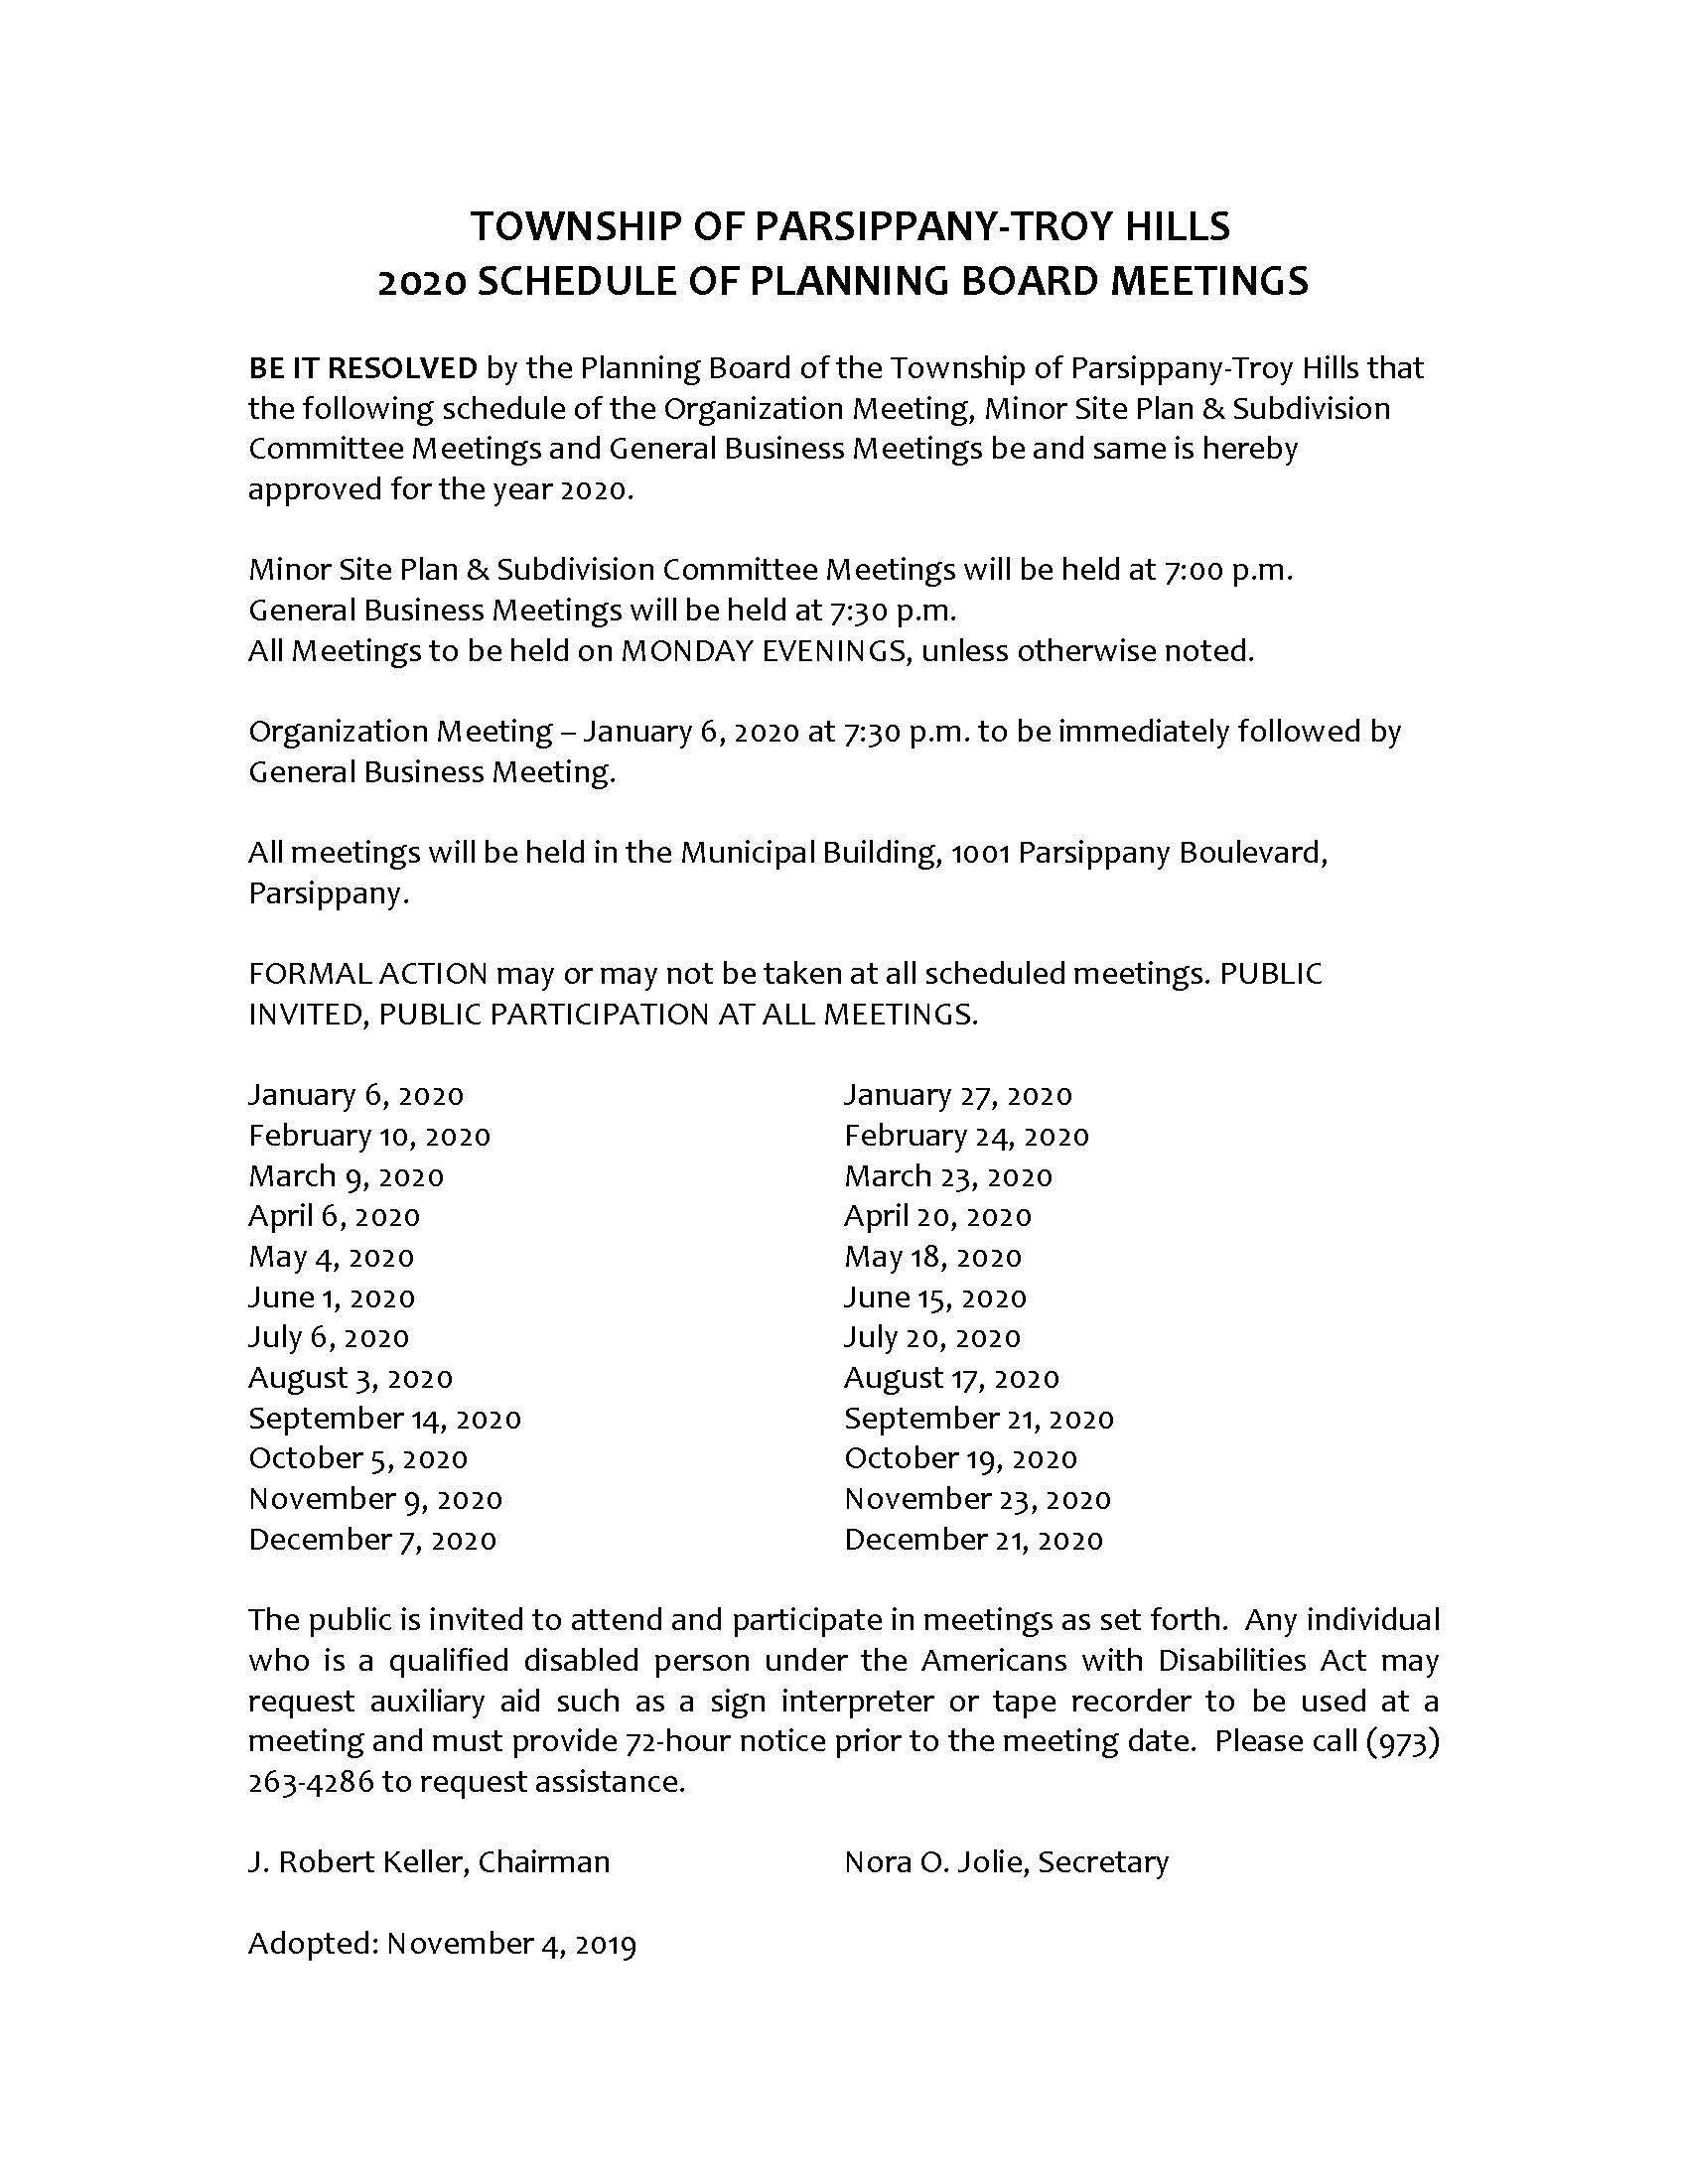 2020 Planning Board Meeting Schedule